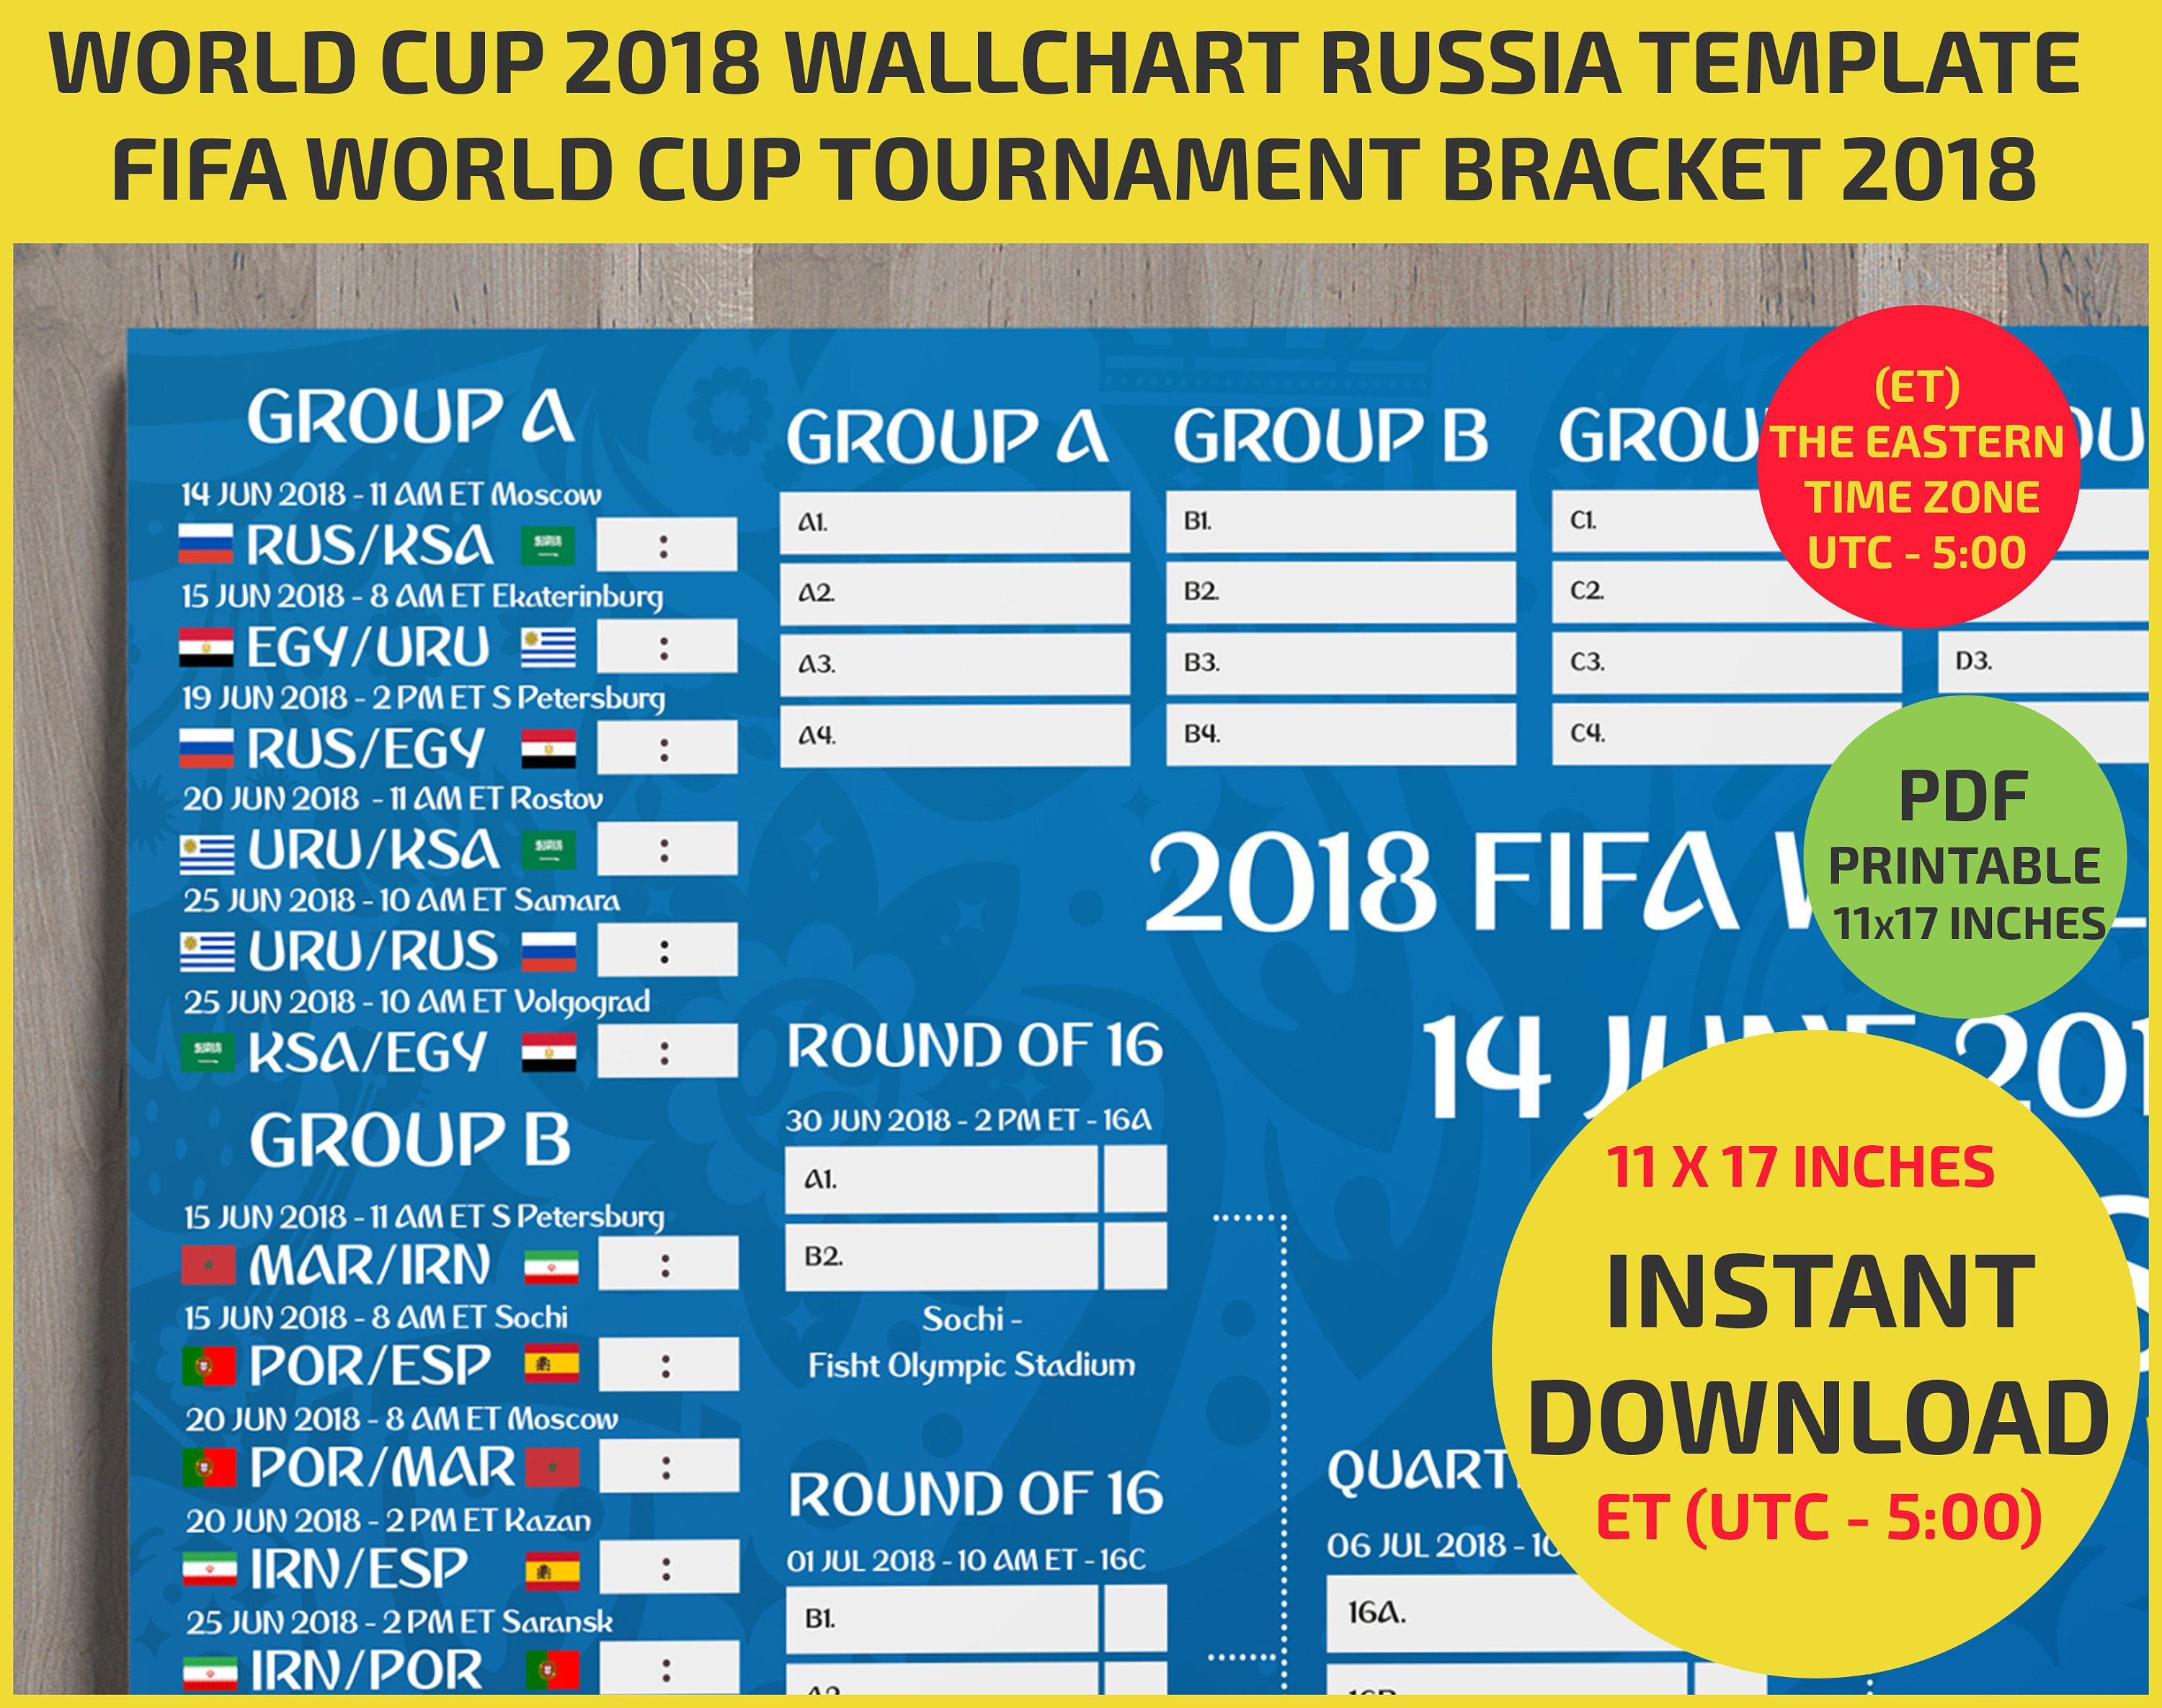 Eastern Time Zone Utc 5 1117 Inches Wallchart Fifa With Images